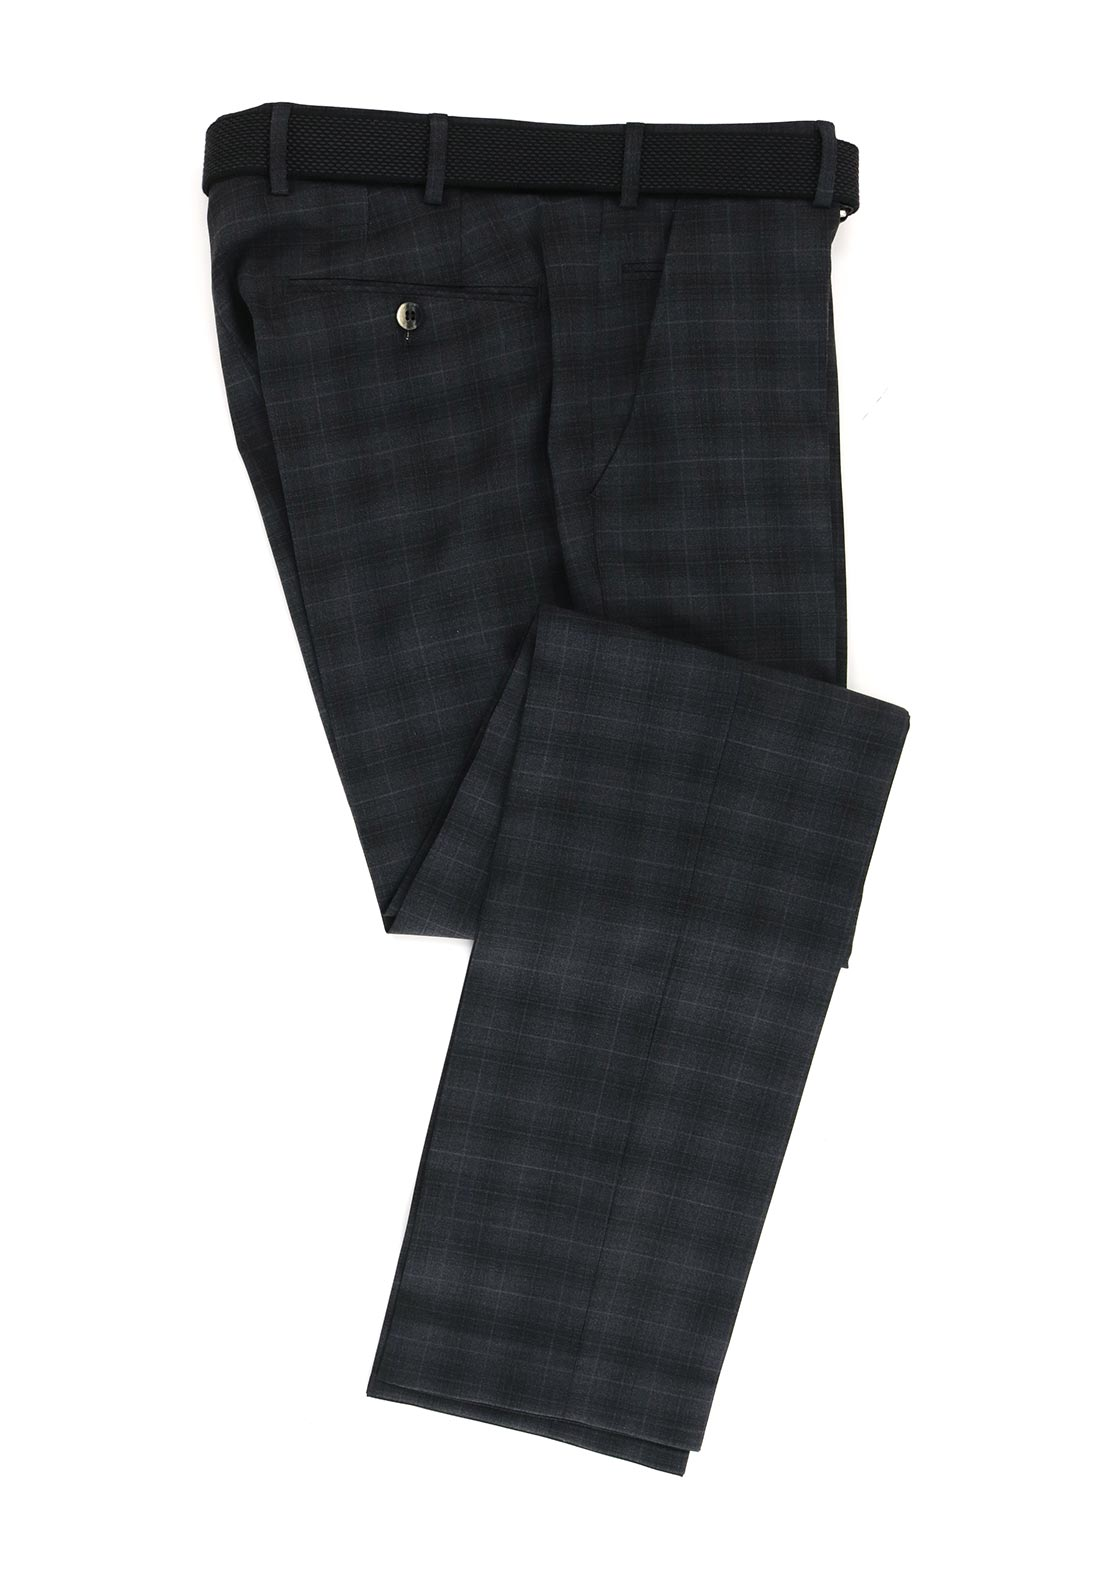 Meyer Mens Bonn Italian Fit Checked Trousers, Charcoal Grey